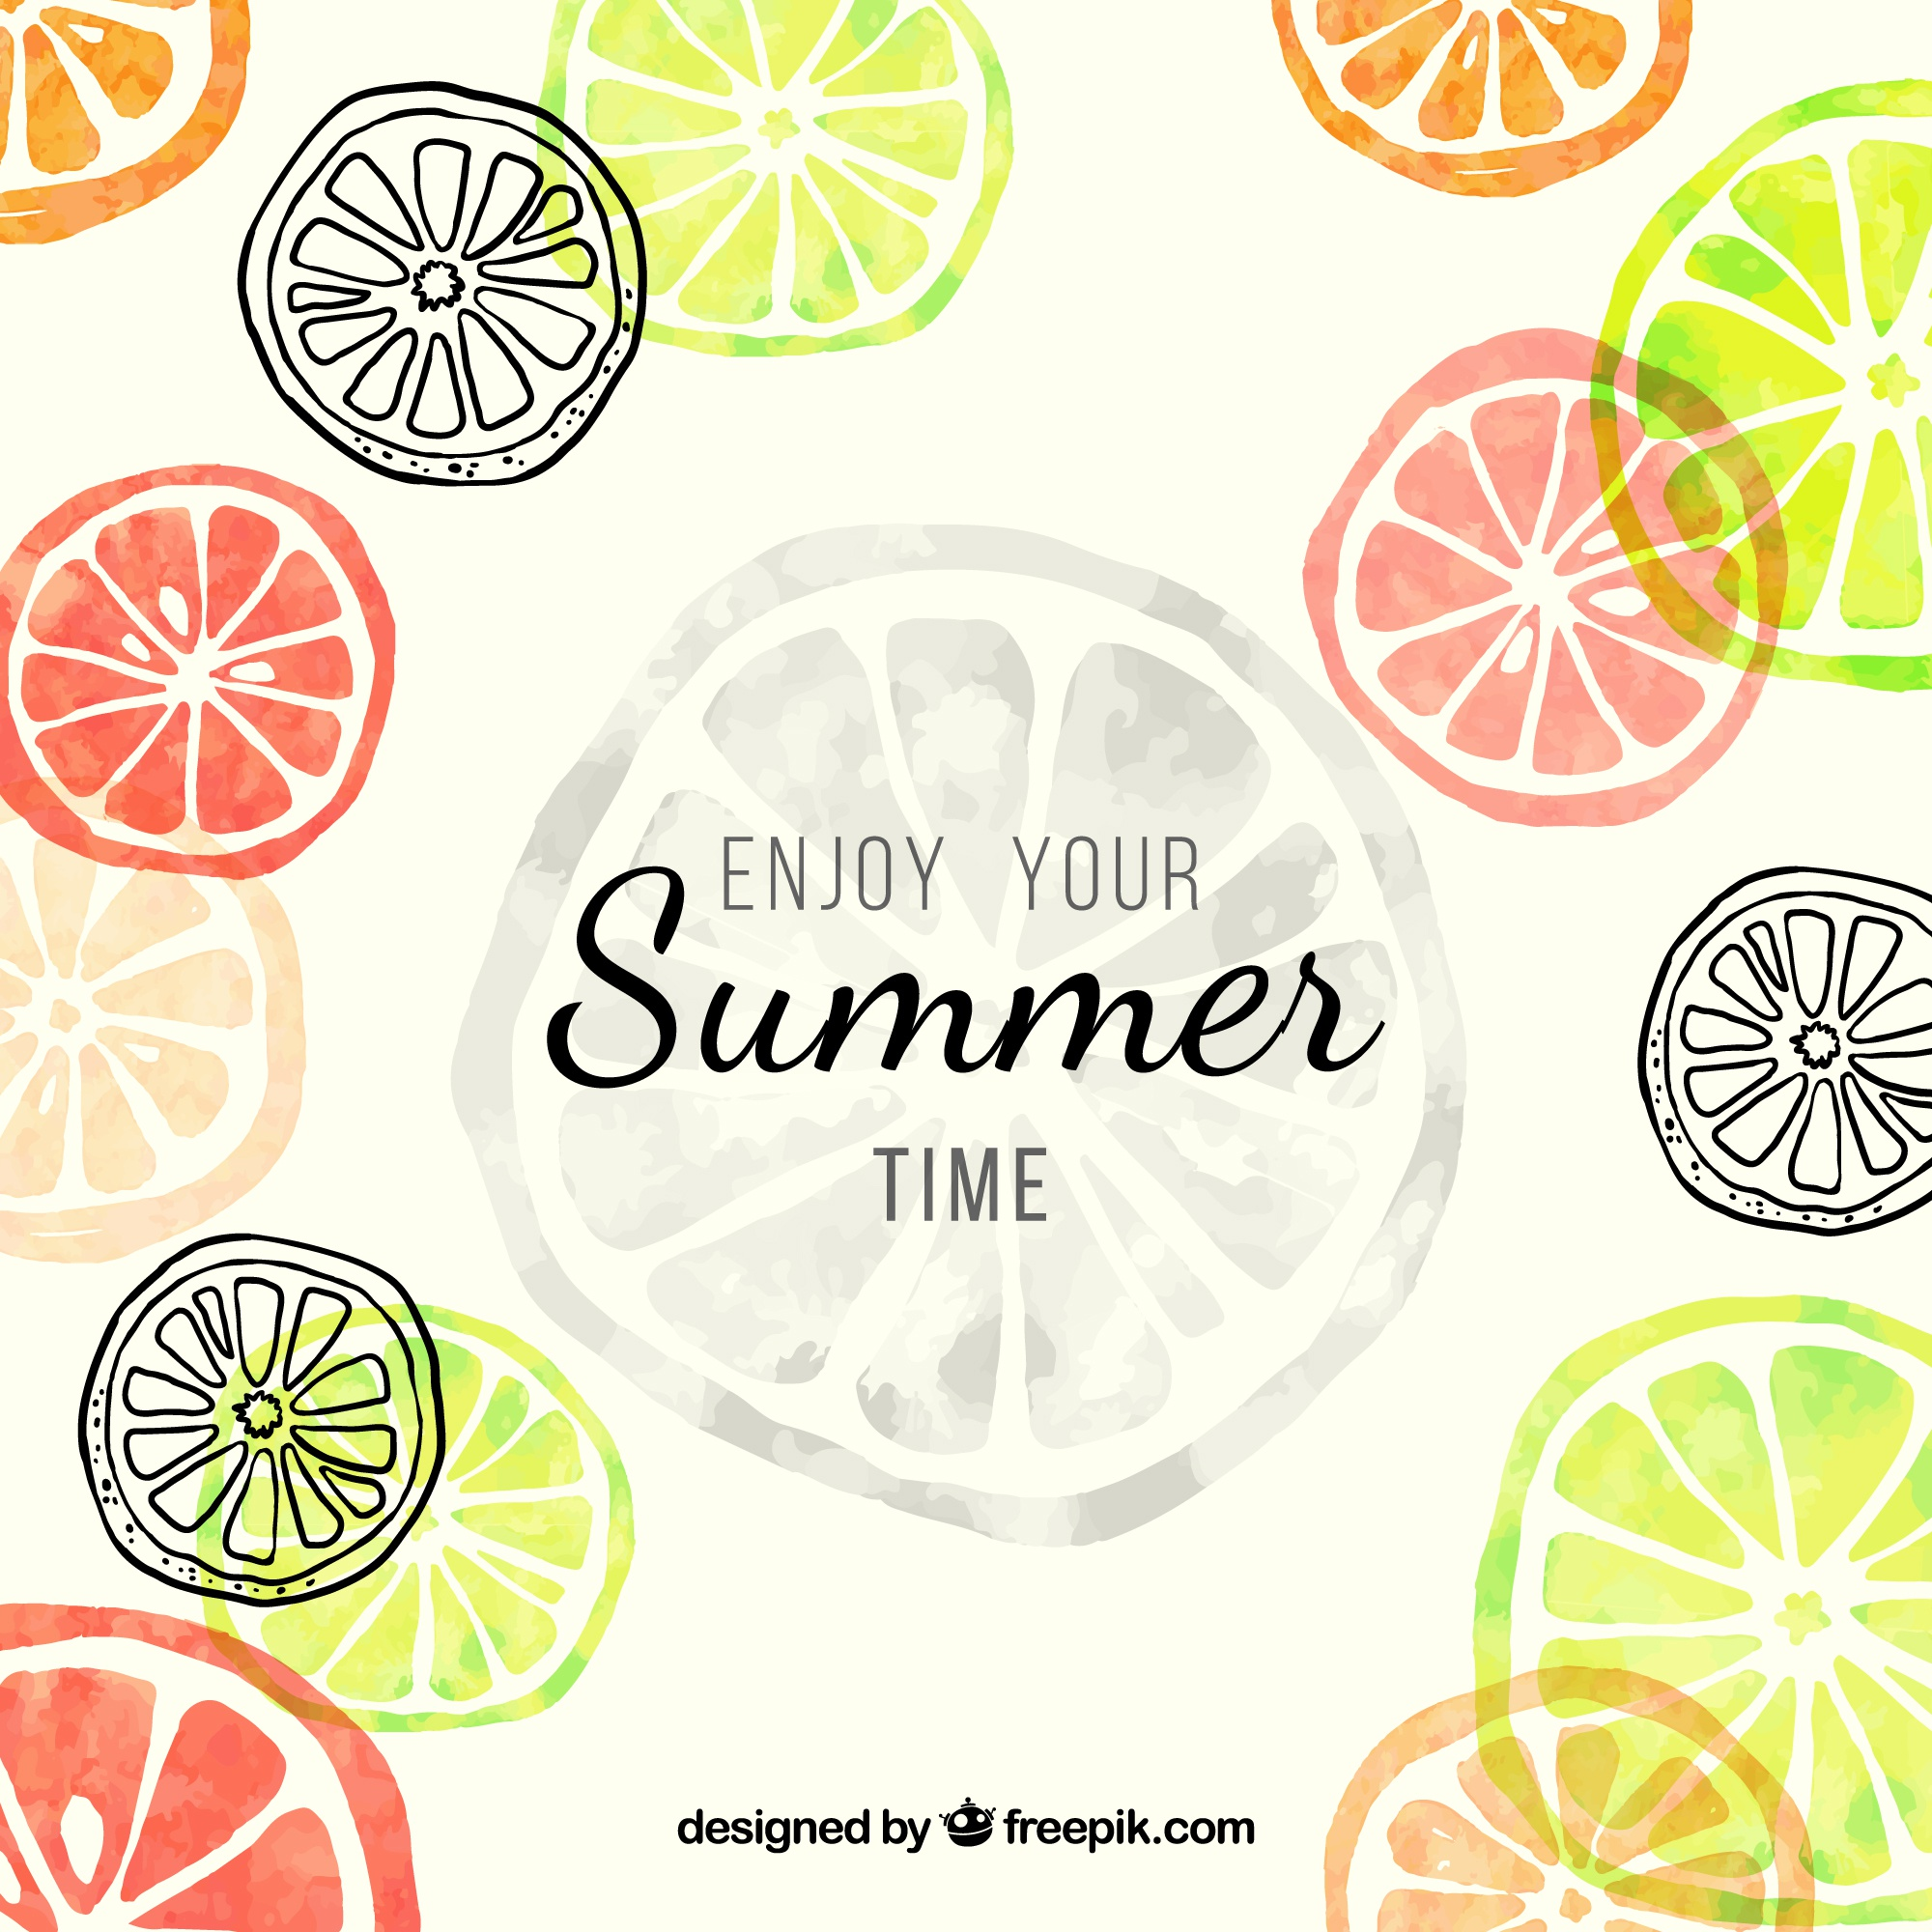 Enjoy your summer time